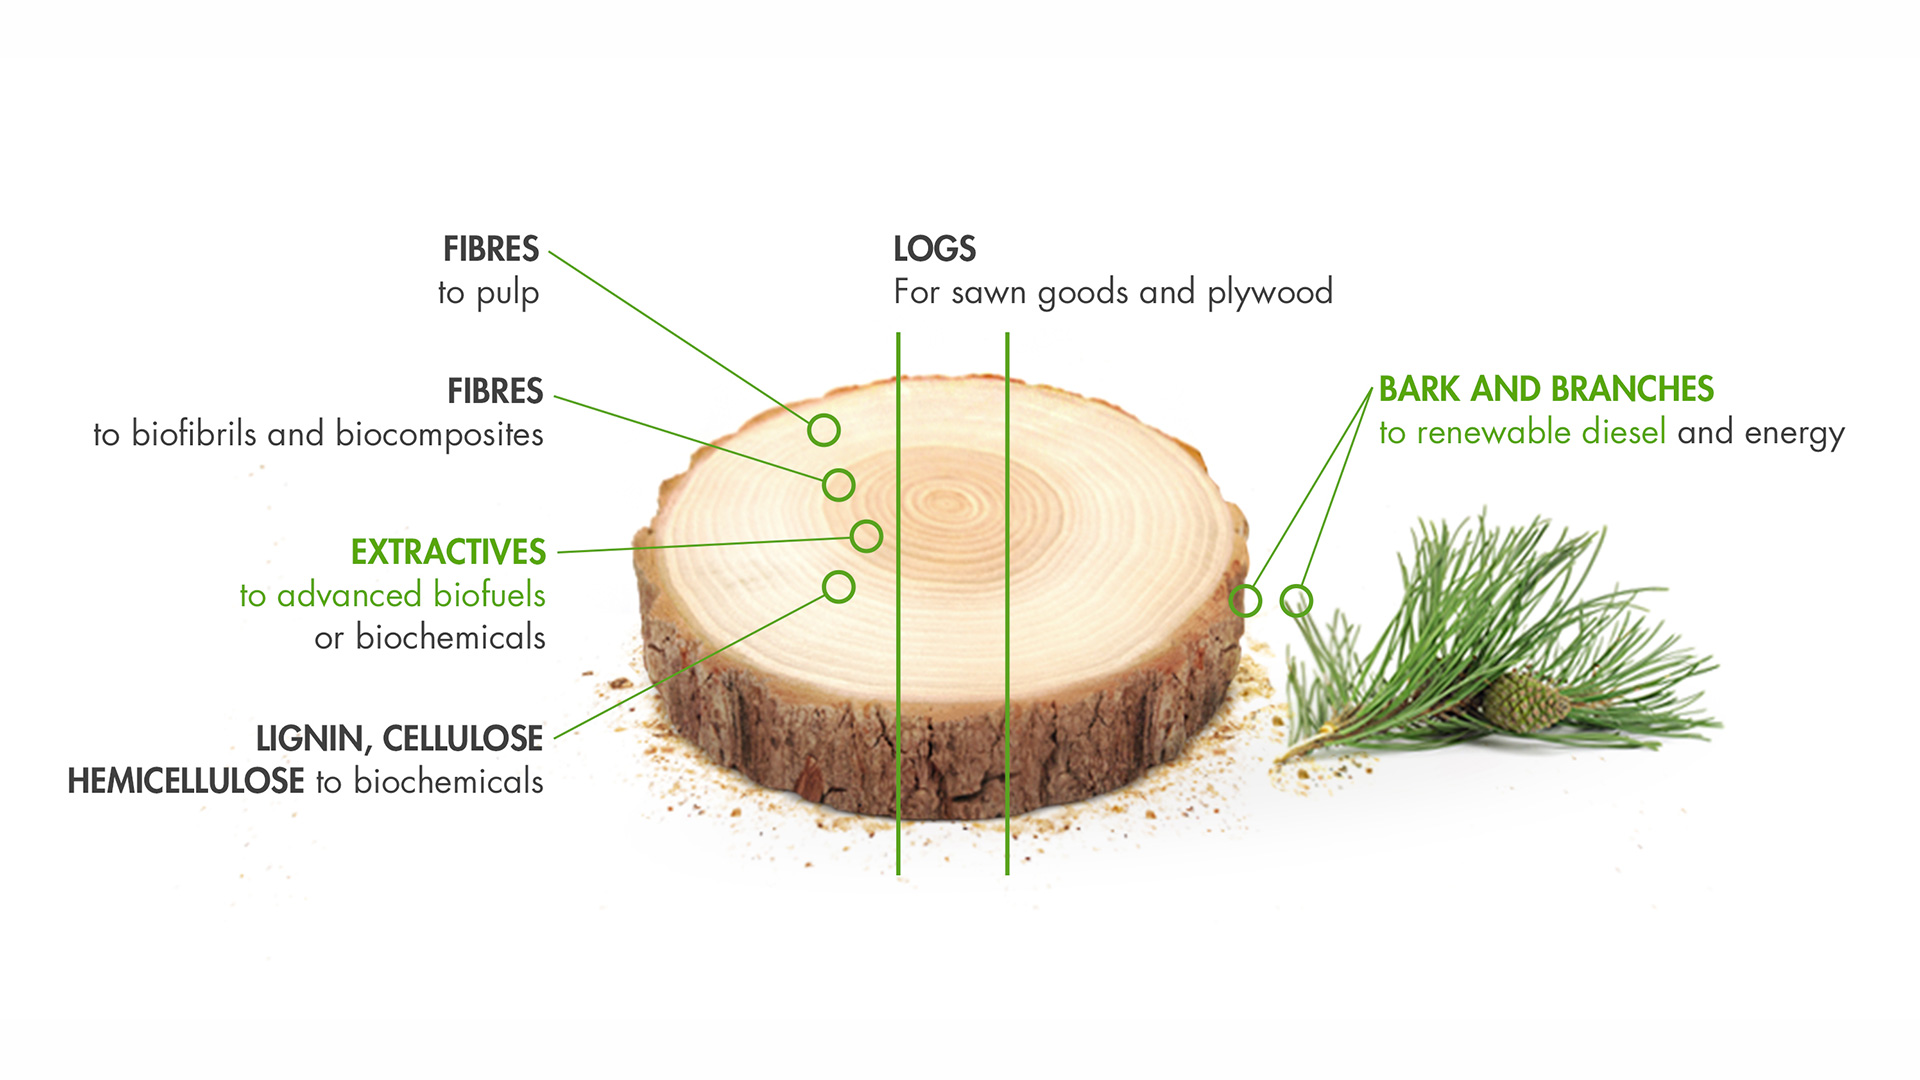 upm-biofuels-wood-raw-material-is-the-basis.jpg